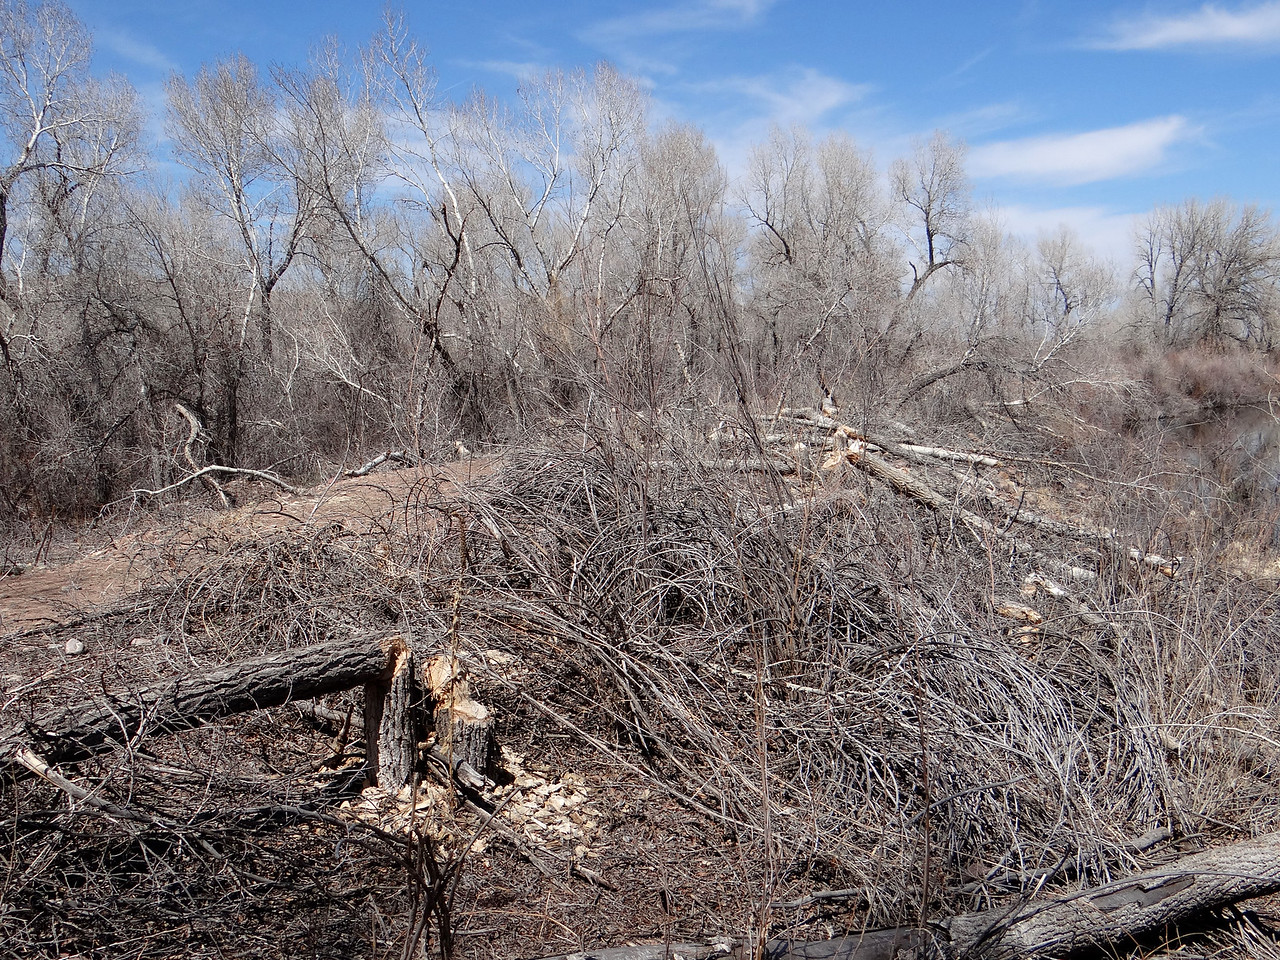 Beavers have had a big impact on the cottonwoods along the South Platte River in Douglas County.